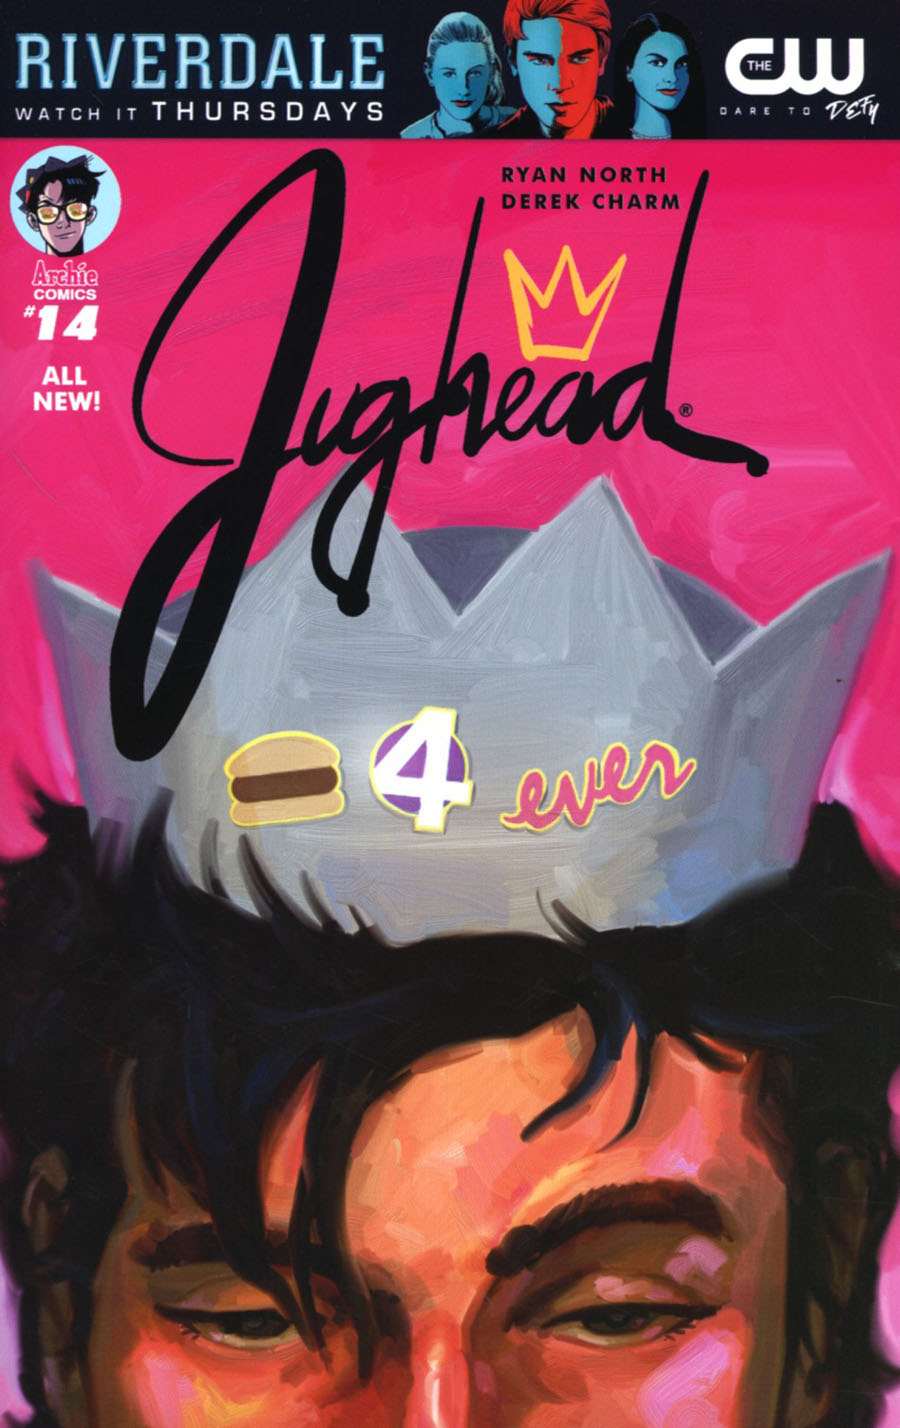 Jughead Vol 3 #14 Cover C Variant Chip Zdarsky Cover